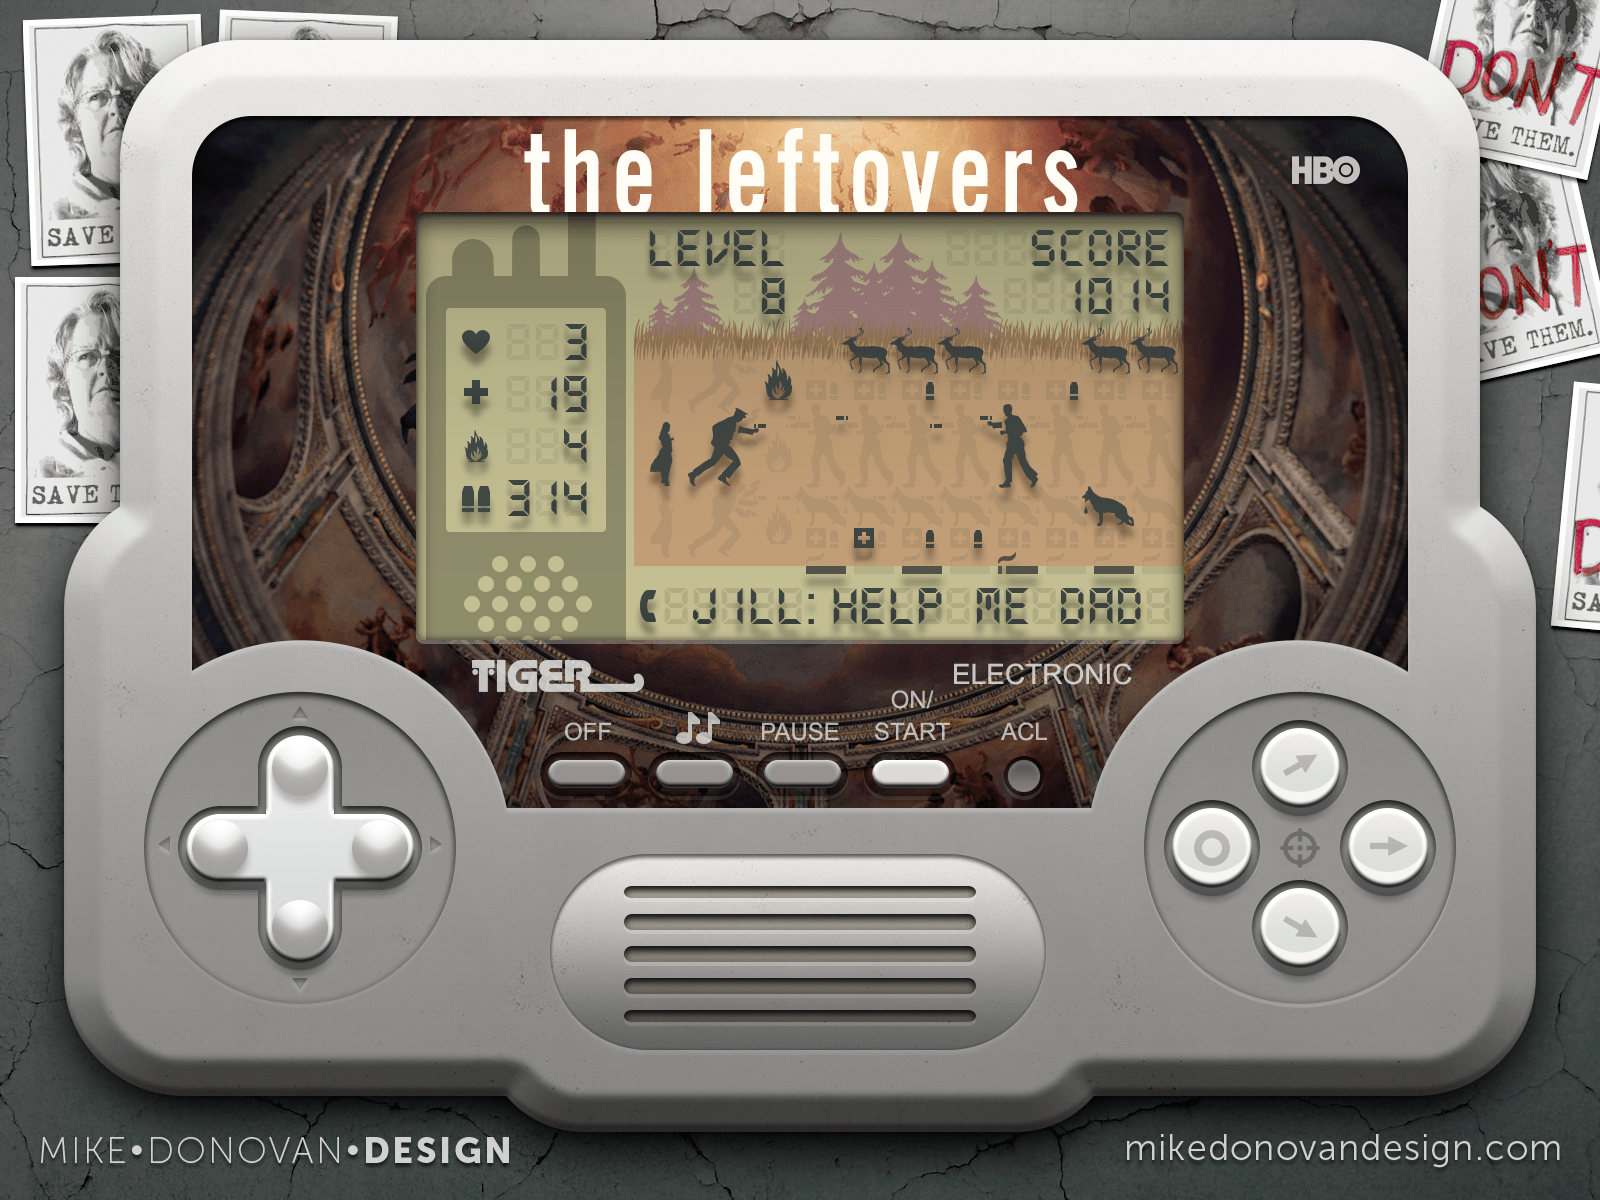 Mike Donovan Design | The Leftovers Throwback Handheld Game